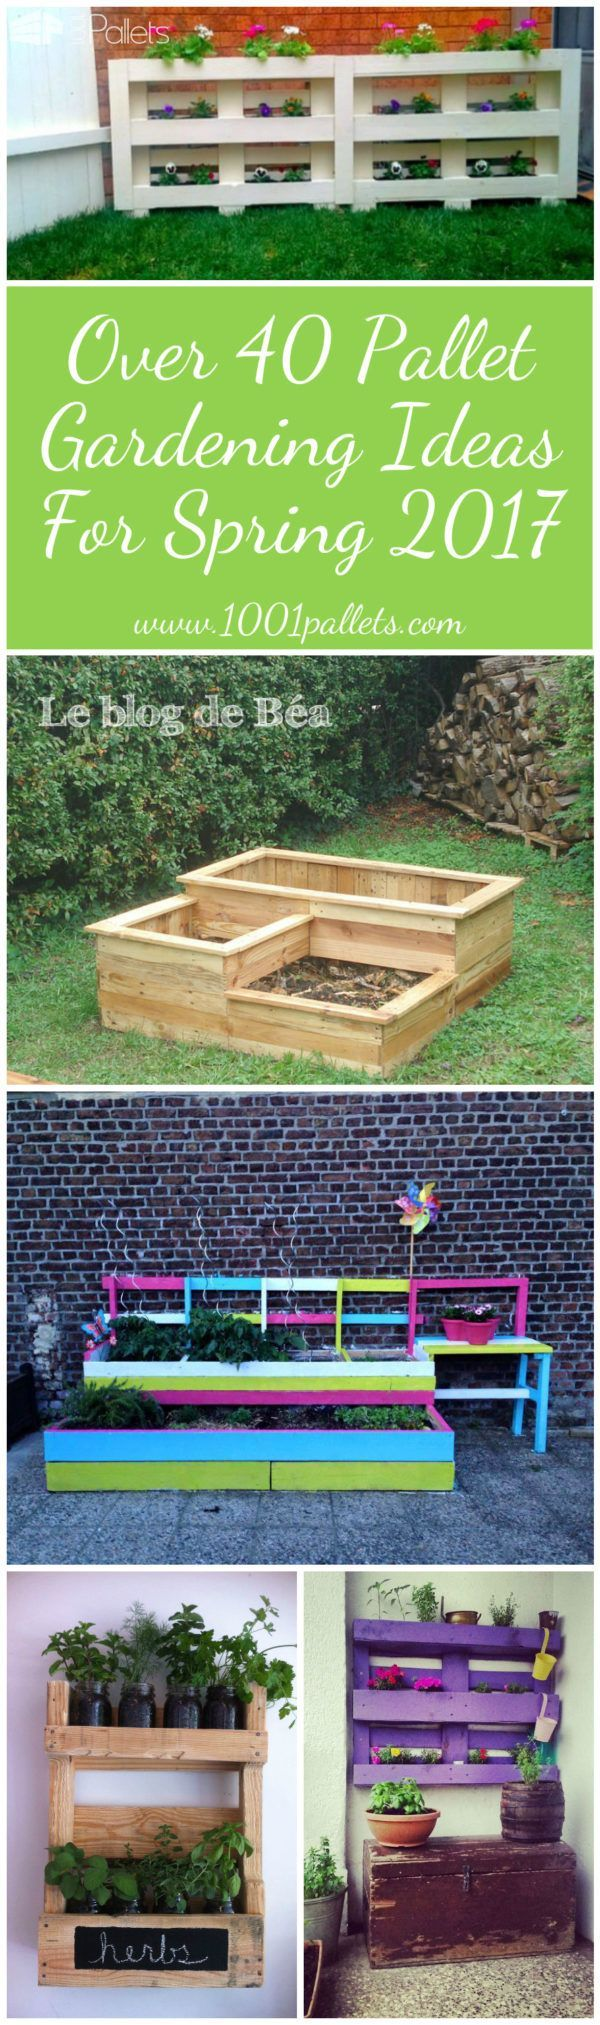 #Best-Of, #Garden, #PalletBench, #PalletFence, #PalletPlanter, #RecyclingWoodPallets Spring is here, and with that, the time is right to start those gardens! Big or small, 1001pallets.com has Spring Pallet Gardening Ideas for 'em all! Have a look at several types of garden planters, raised beds, vertical gardens and more that you